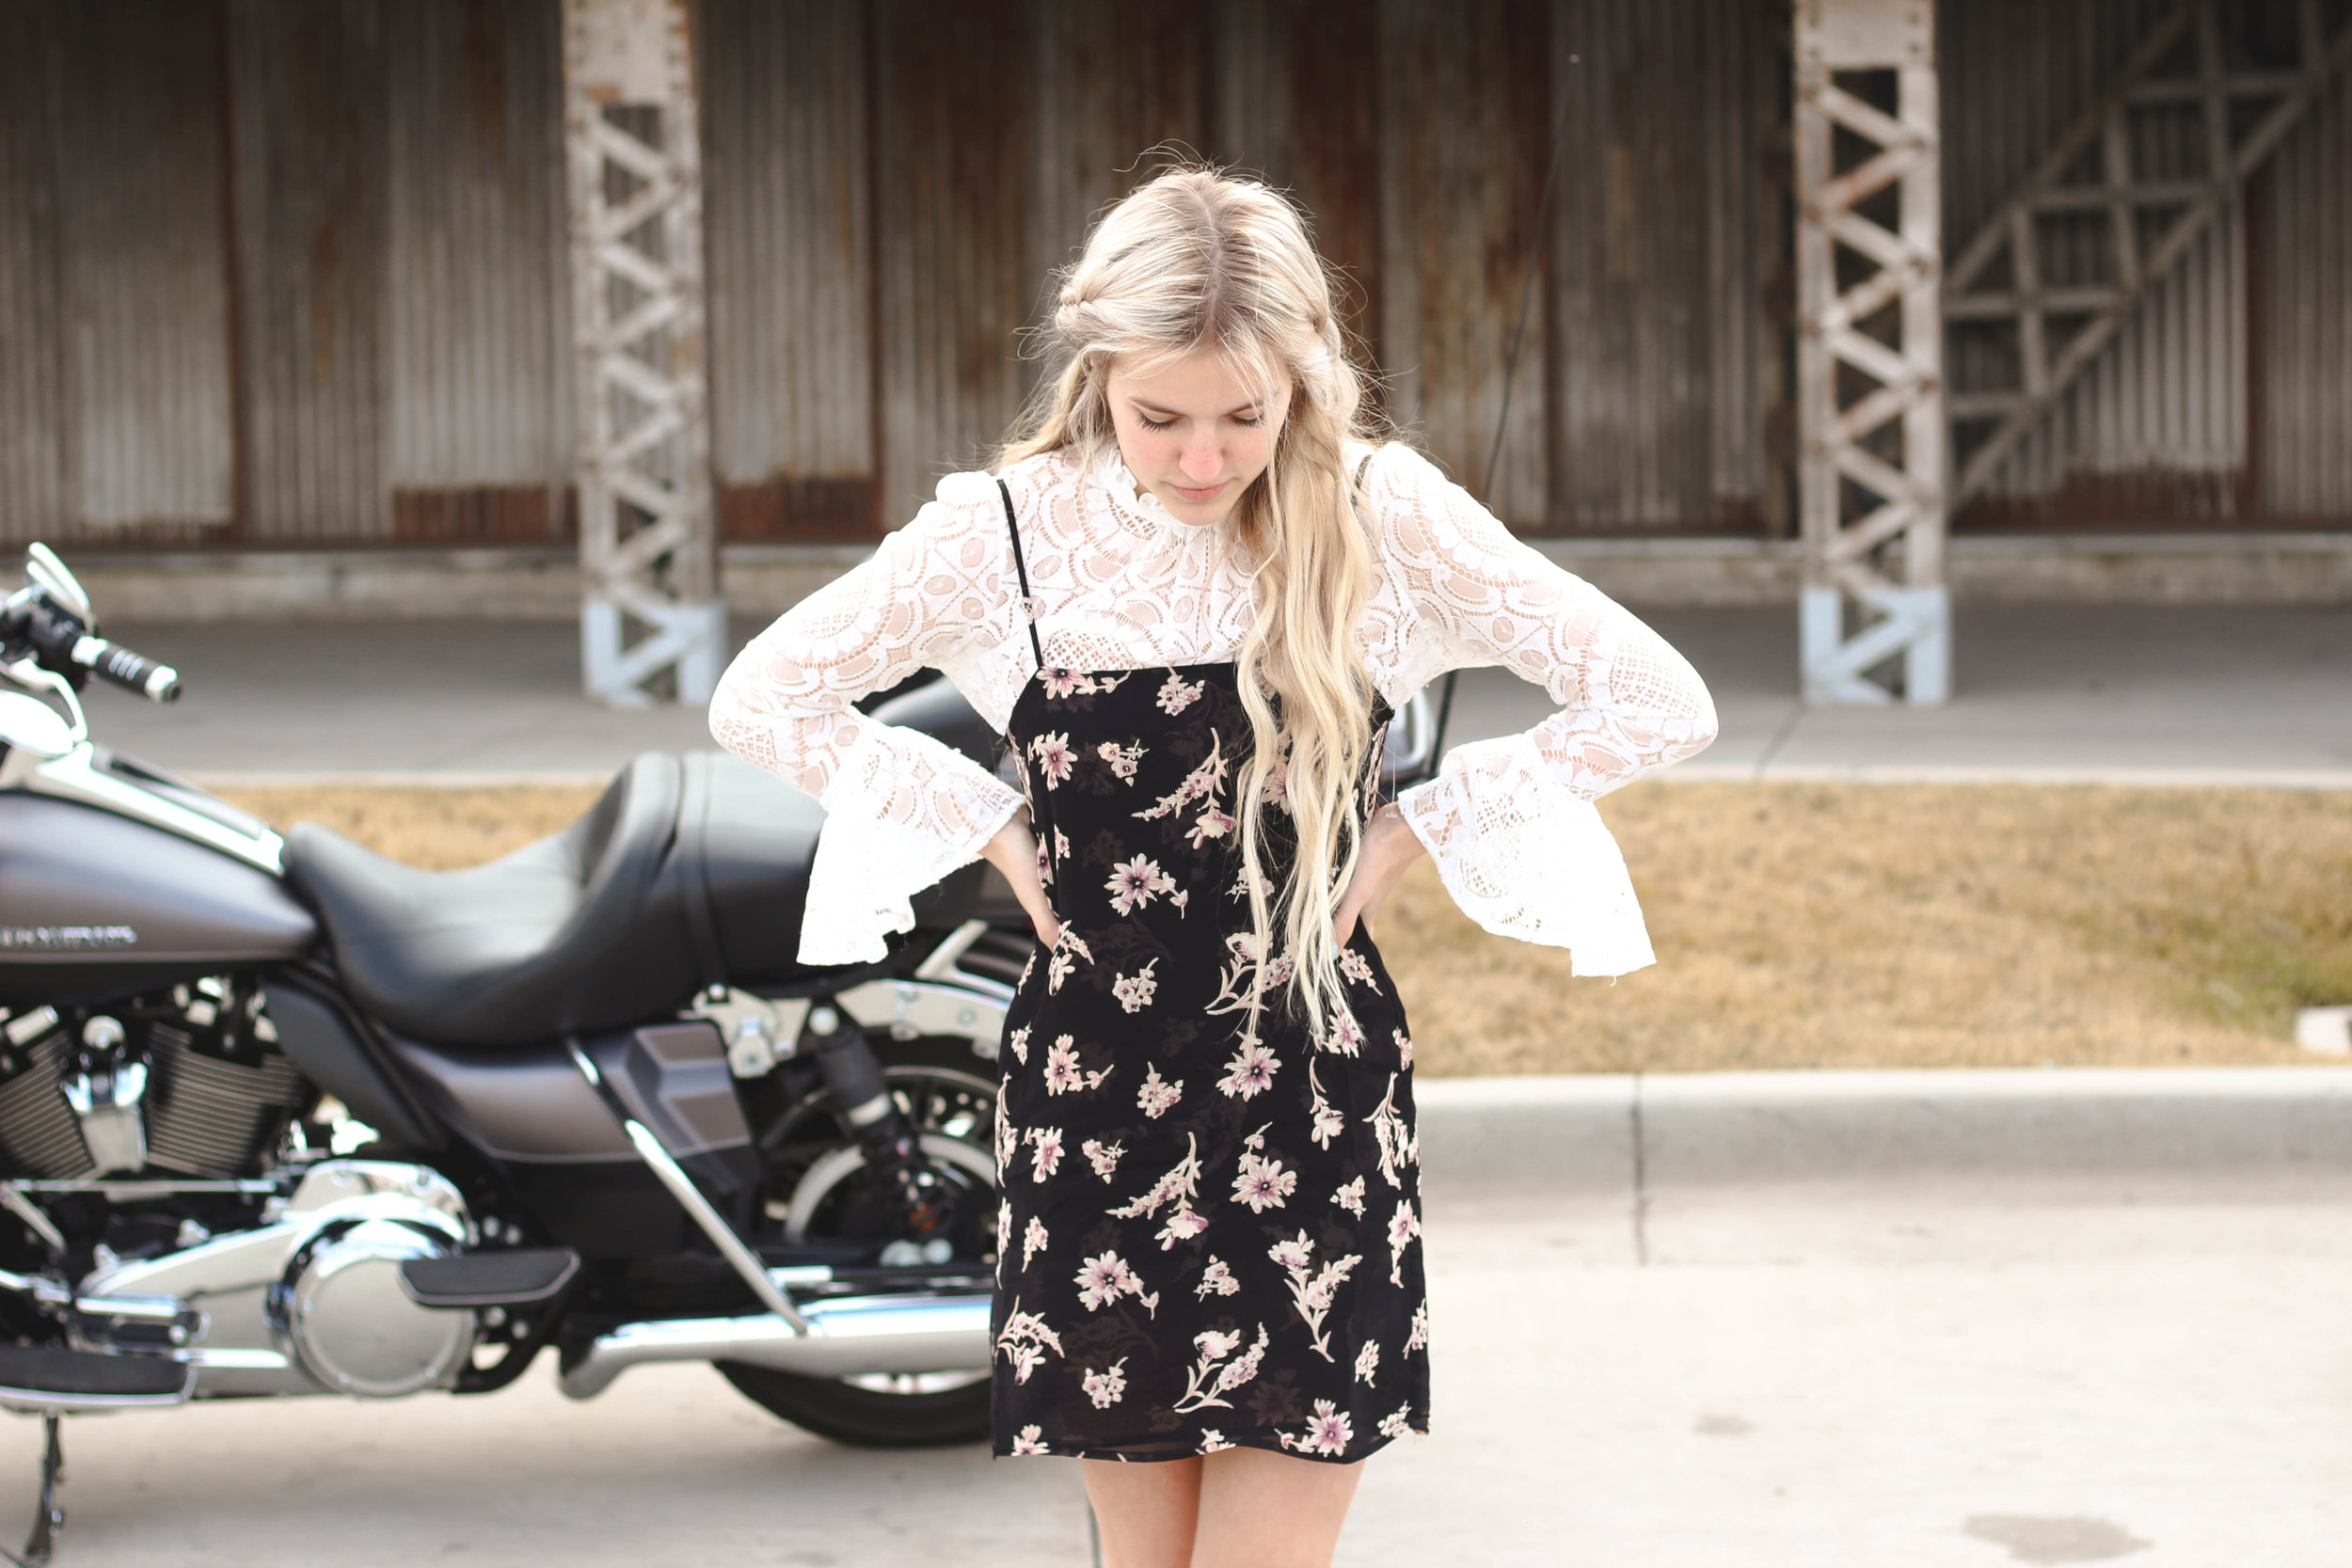 Lace Top and Black Flynn Skye Slip Dress: Valentine's Day Outfit Inspiration